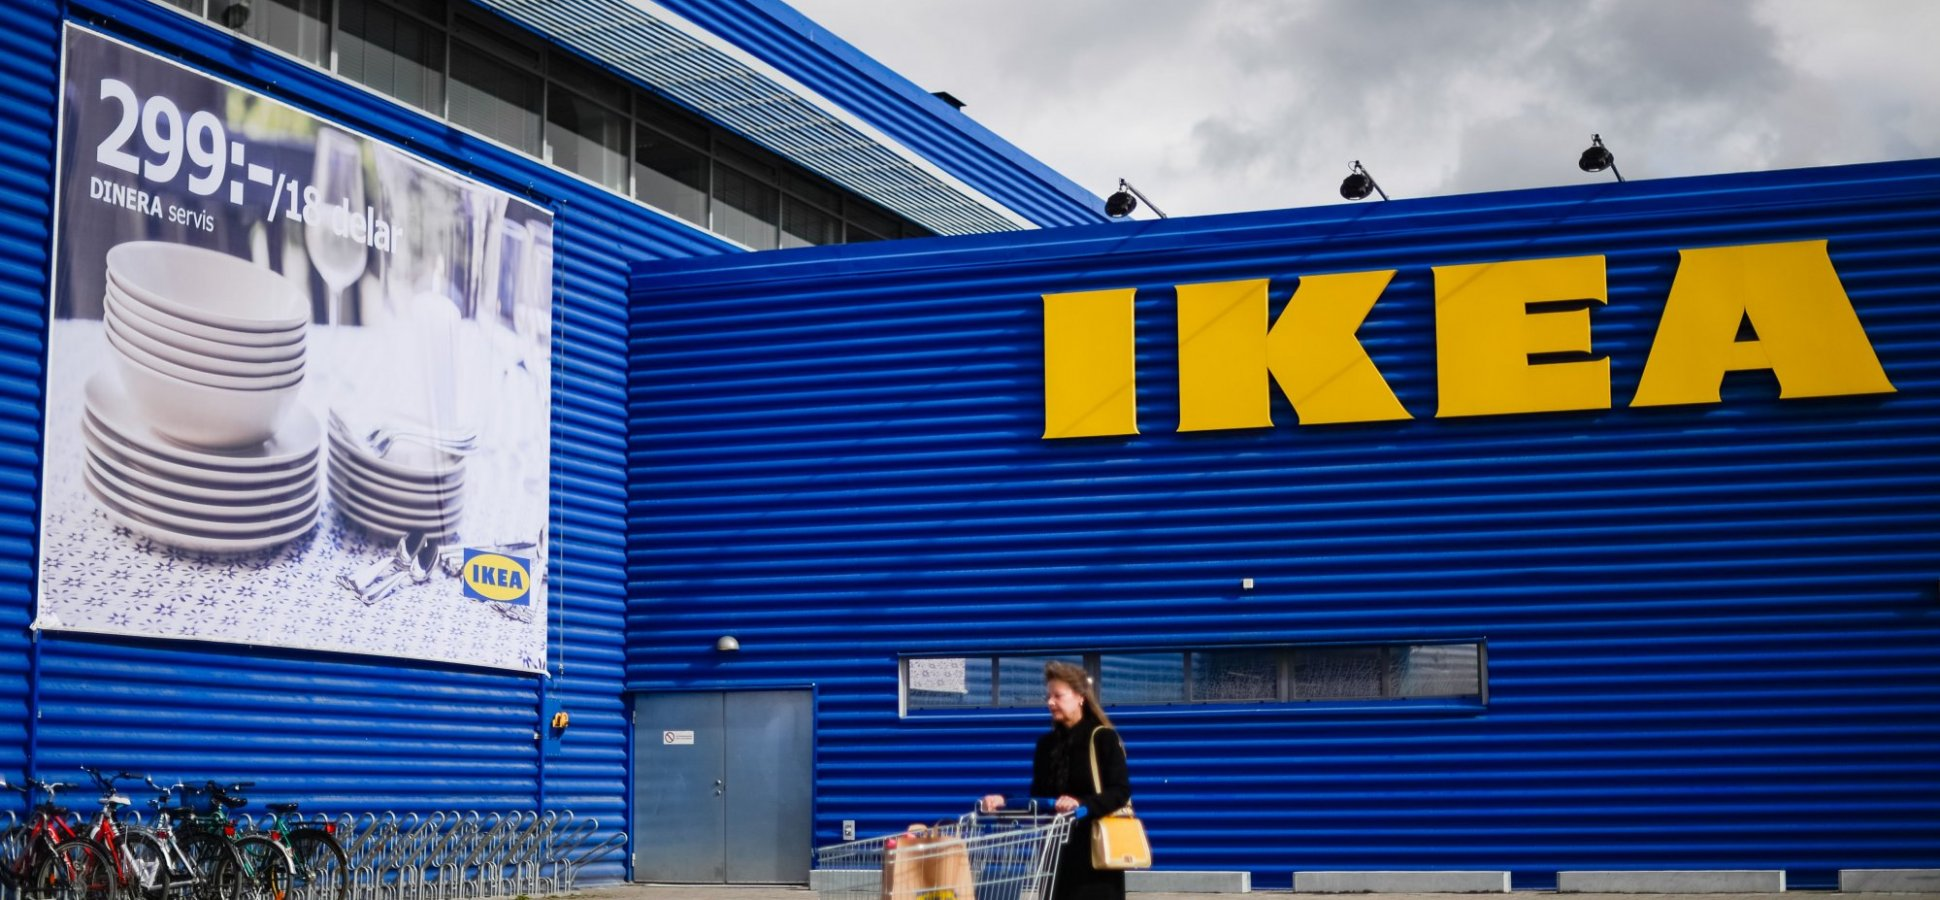 Ikea Just Made A Big Announcement That Could Forever Change How We